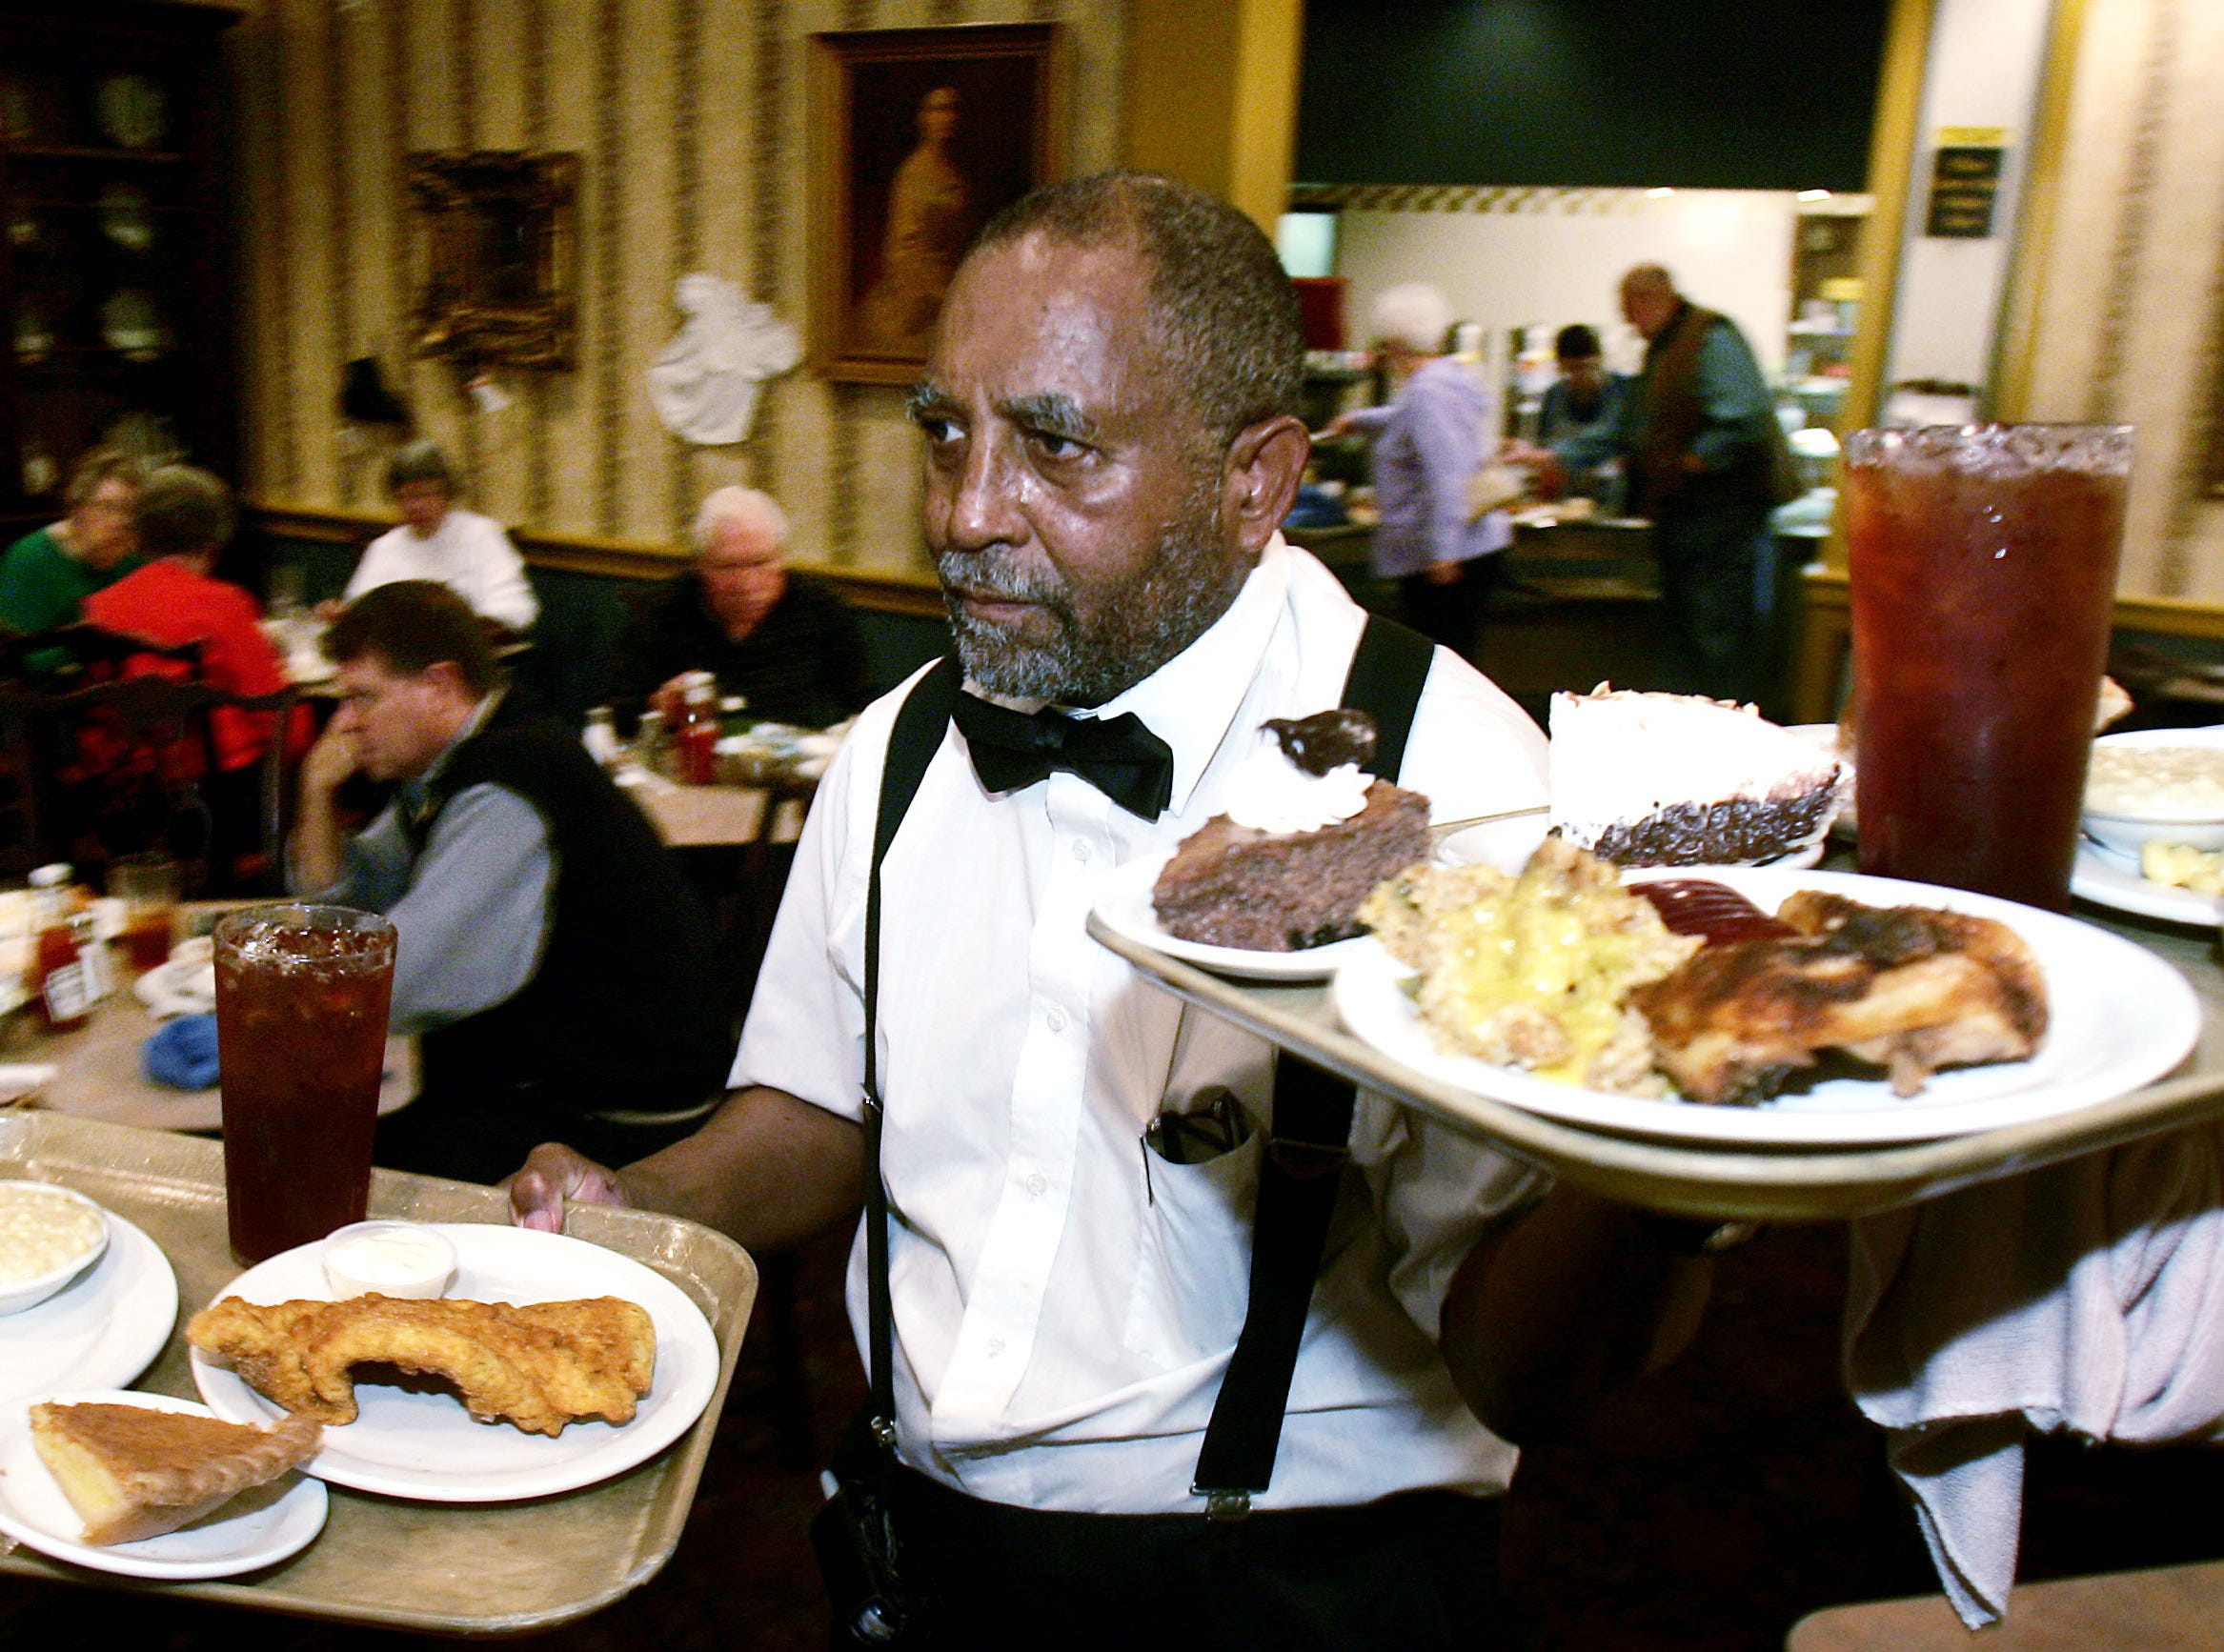 """Gus McGlasken has been working at the Belle Meade Cafeteria """"for some 25 plus years now,"""" he says as he carries food to his tables Dec. 21, 2006. Owner Corey Nix said he expects about 40 jobs to be lost when the restaurant closes."""